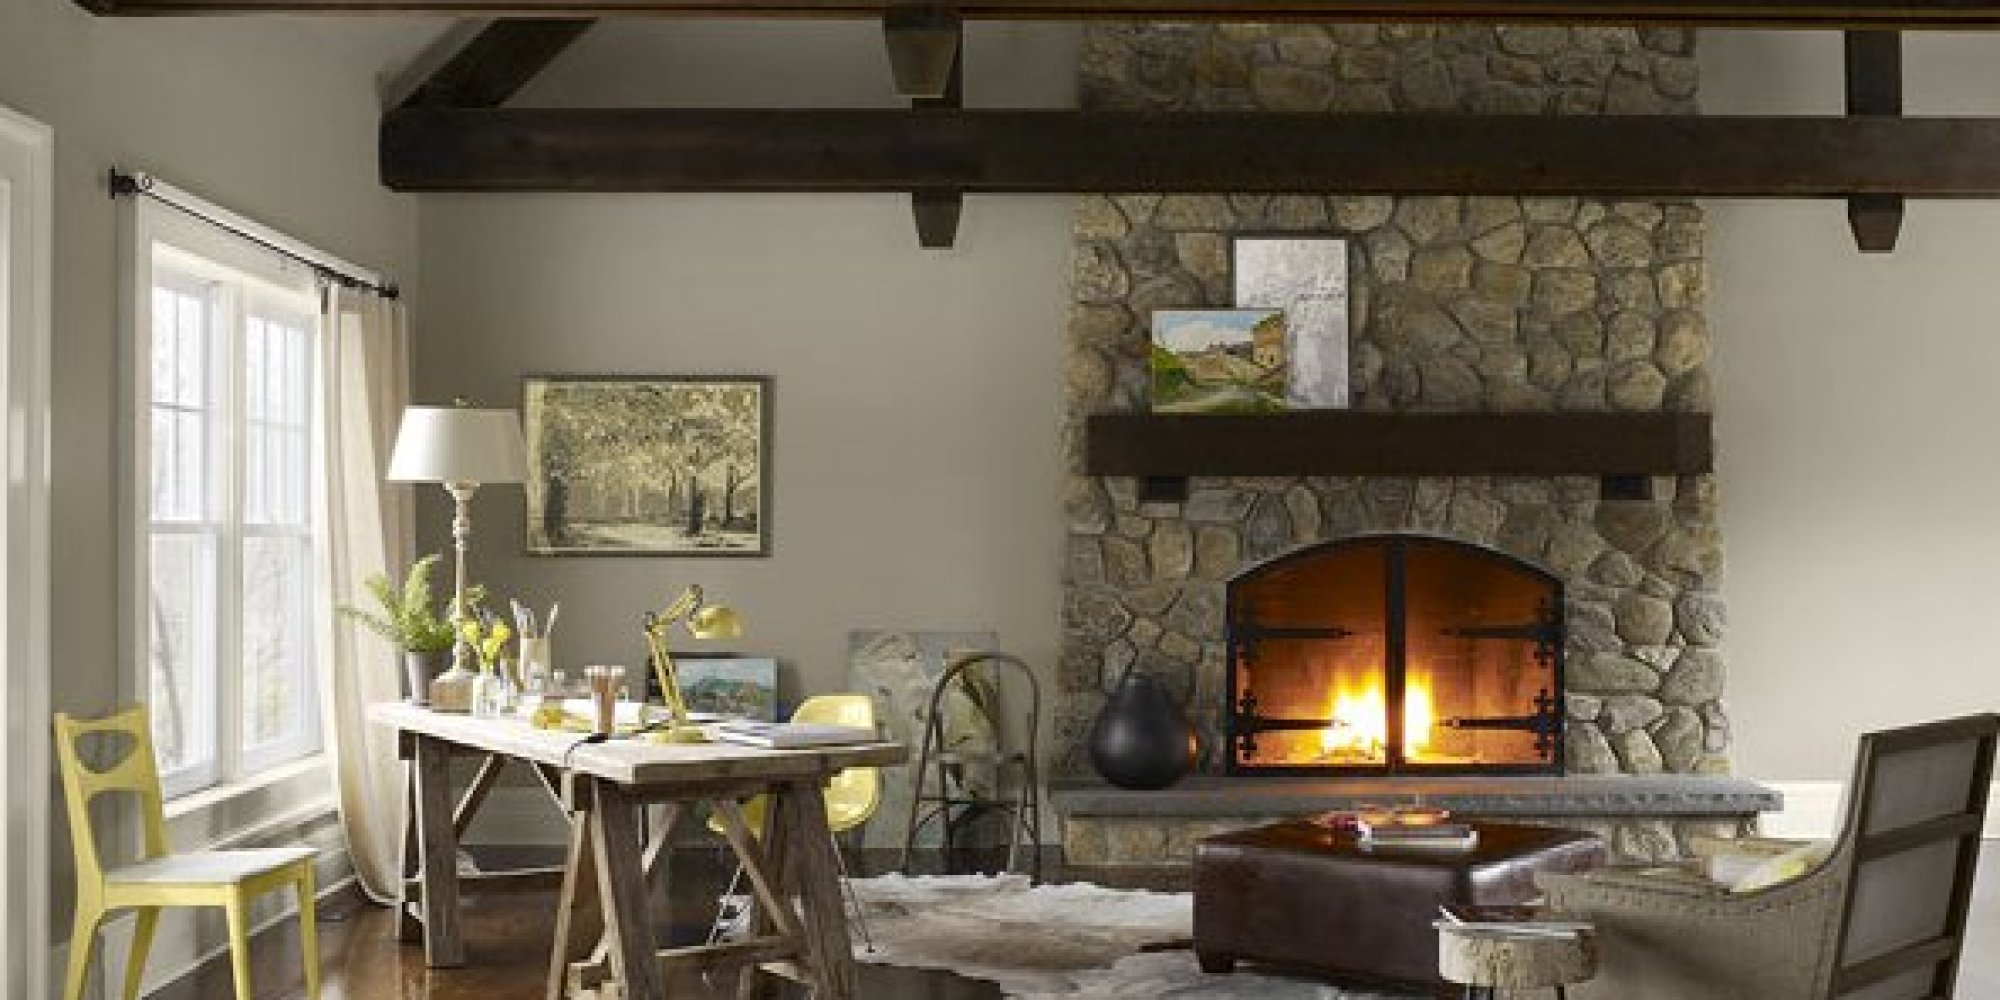 11 incredibly cozy rooms with fireplaces photos huffpost